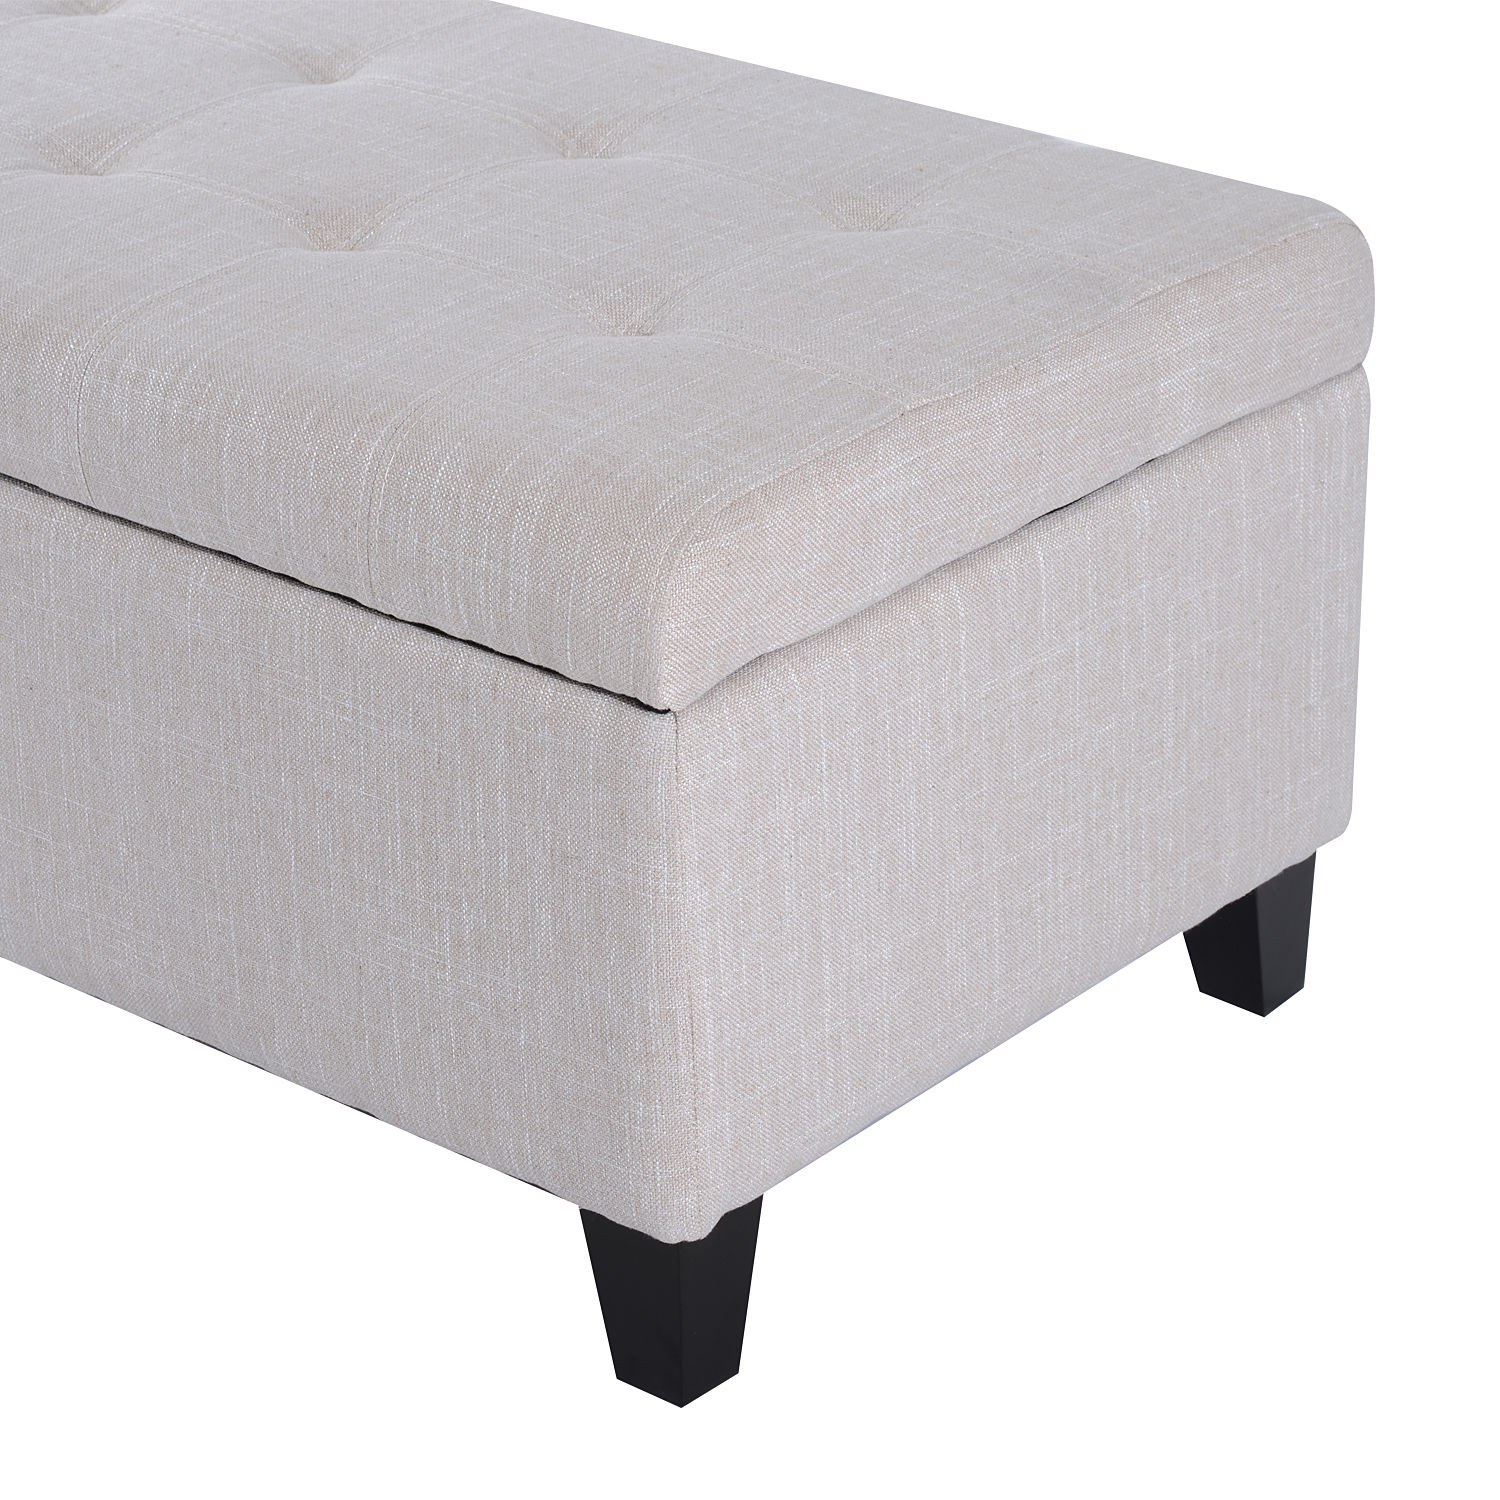 51-034-Lift-Top-Storage-Ottoman-Tufted-Fabric-Shoe-Bench-Footrest-Stool-Seat thumbnail 7